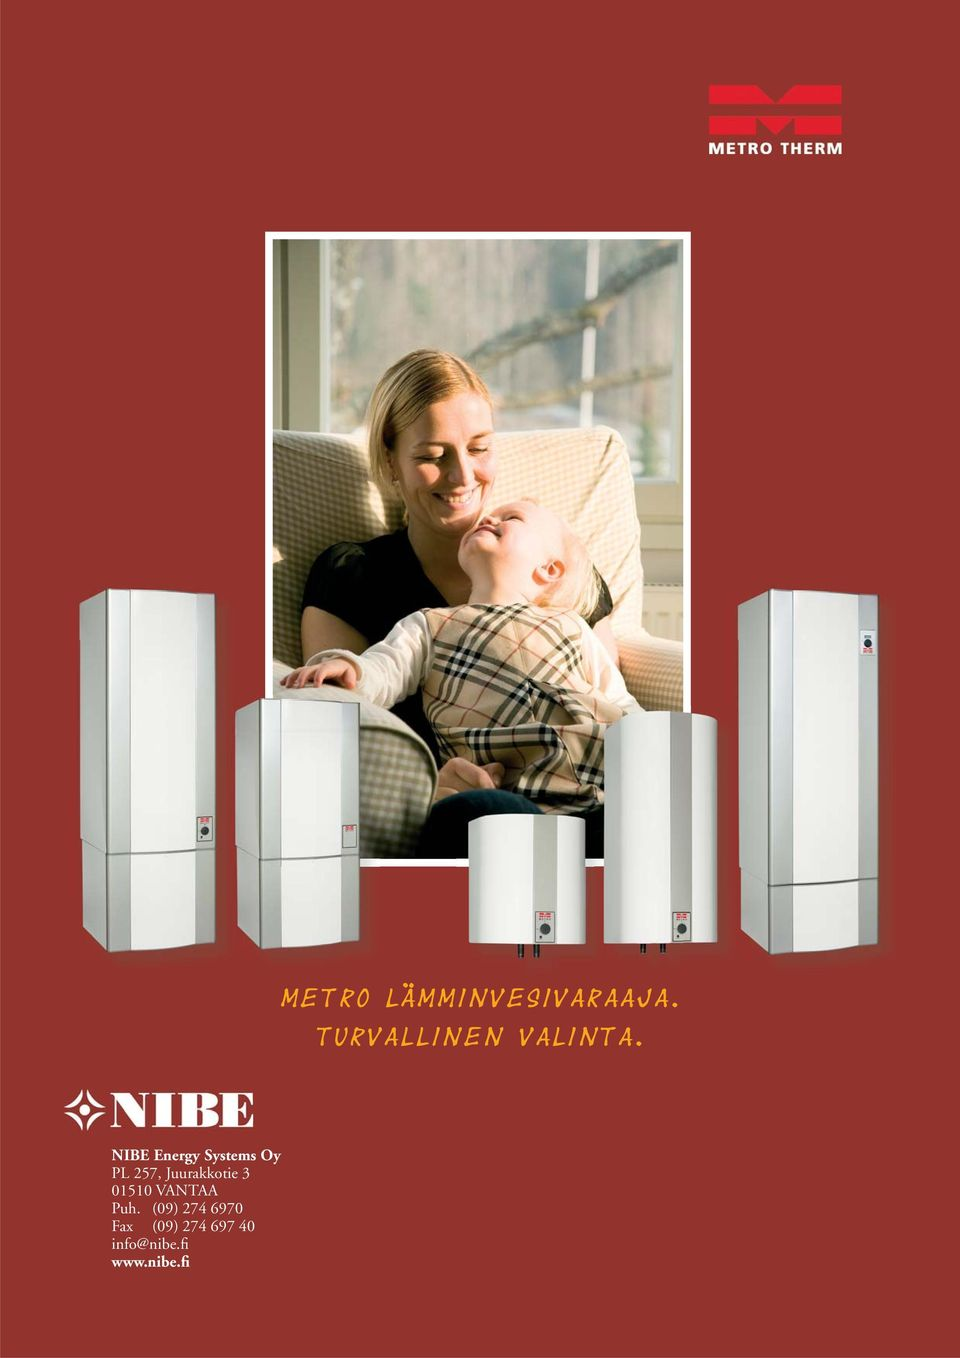 NIBE Energy Systems Oy PL 257,